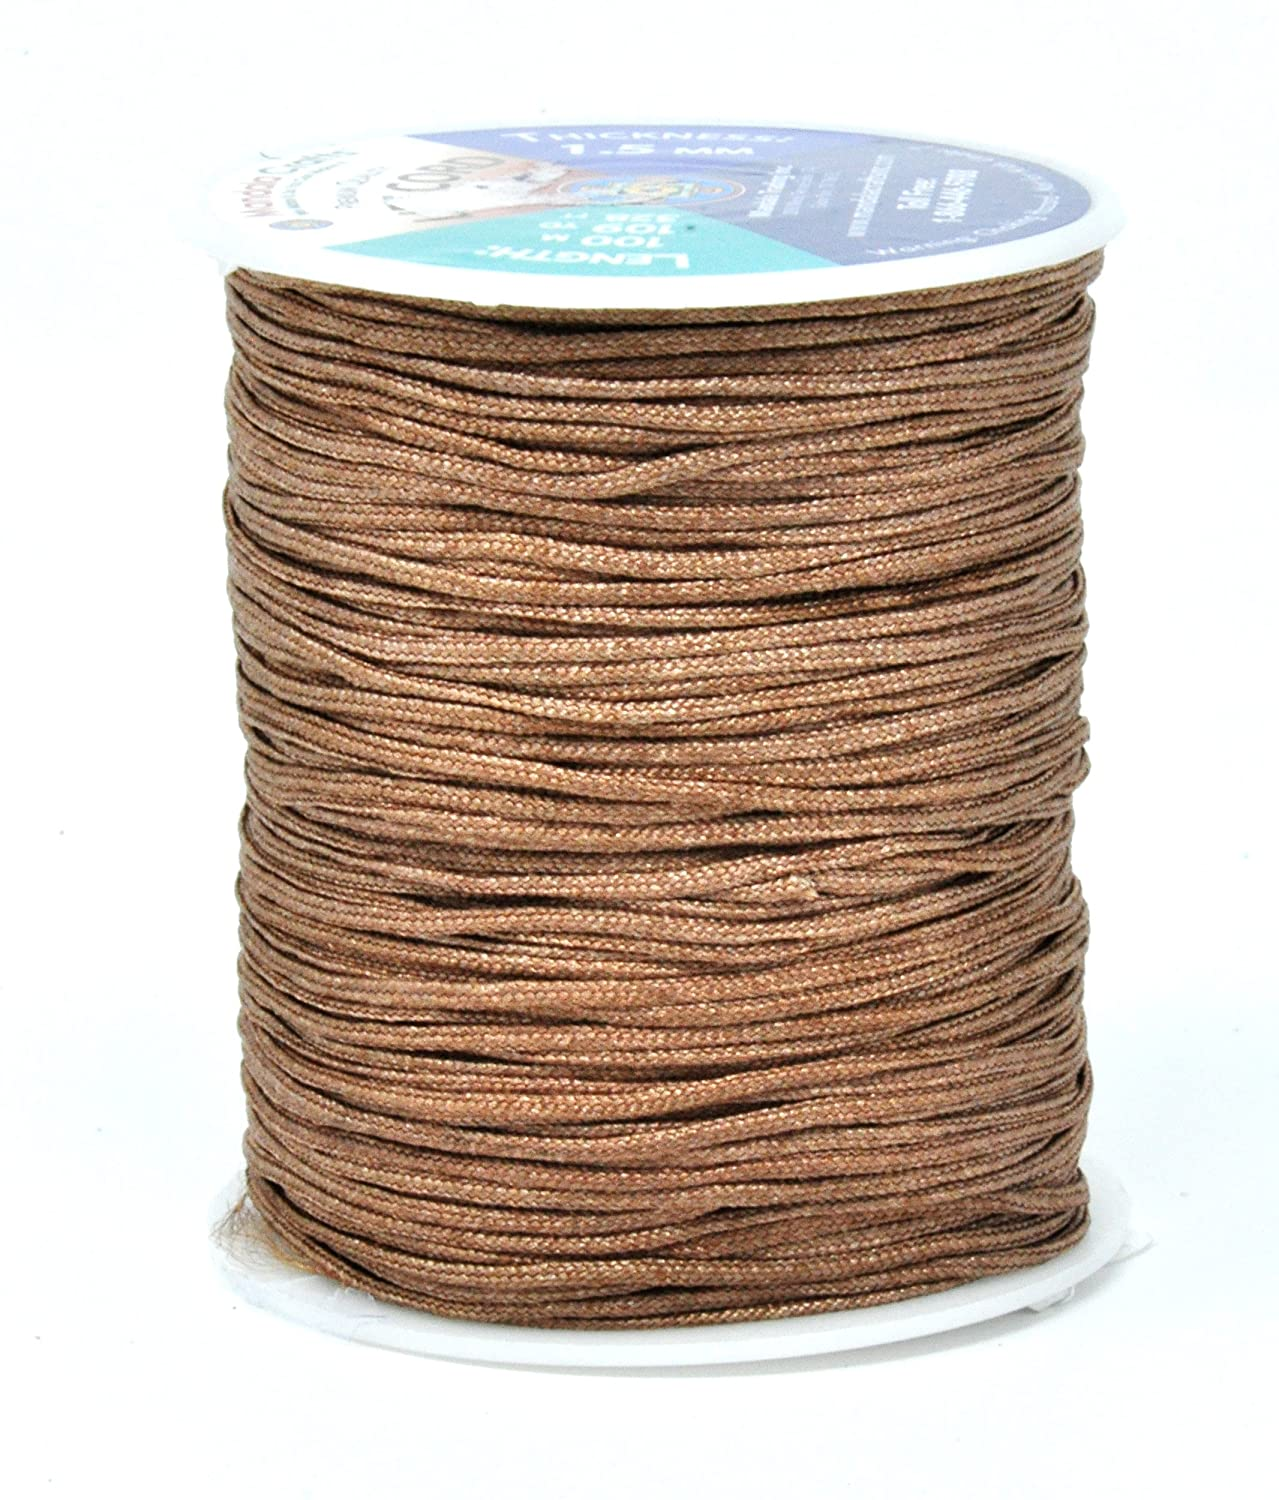 0.8mm, White Roman Shade Repair Windows Venetian and Roller Blinds Replacement String for RVs Mandala Crafts Braided Nylon Lift Cord